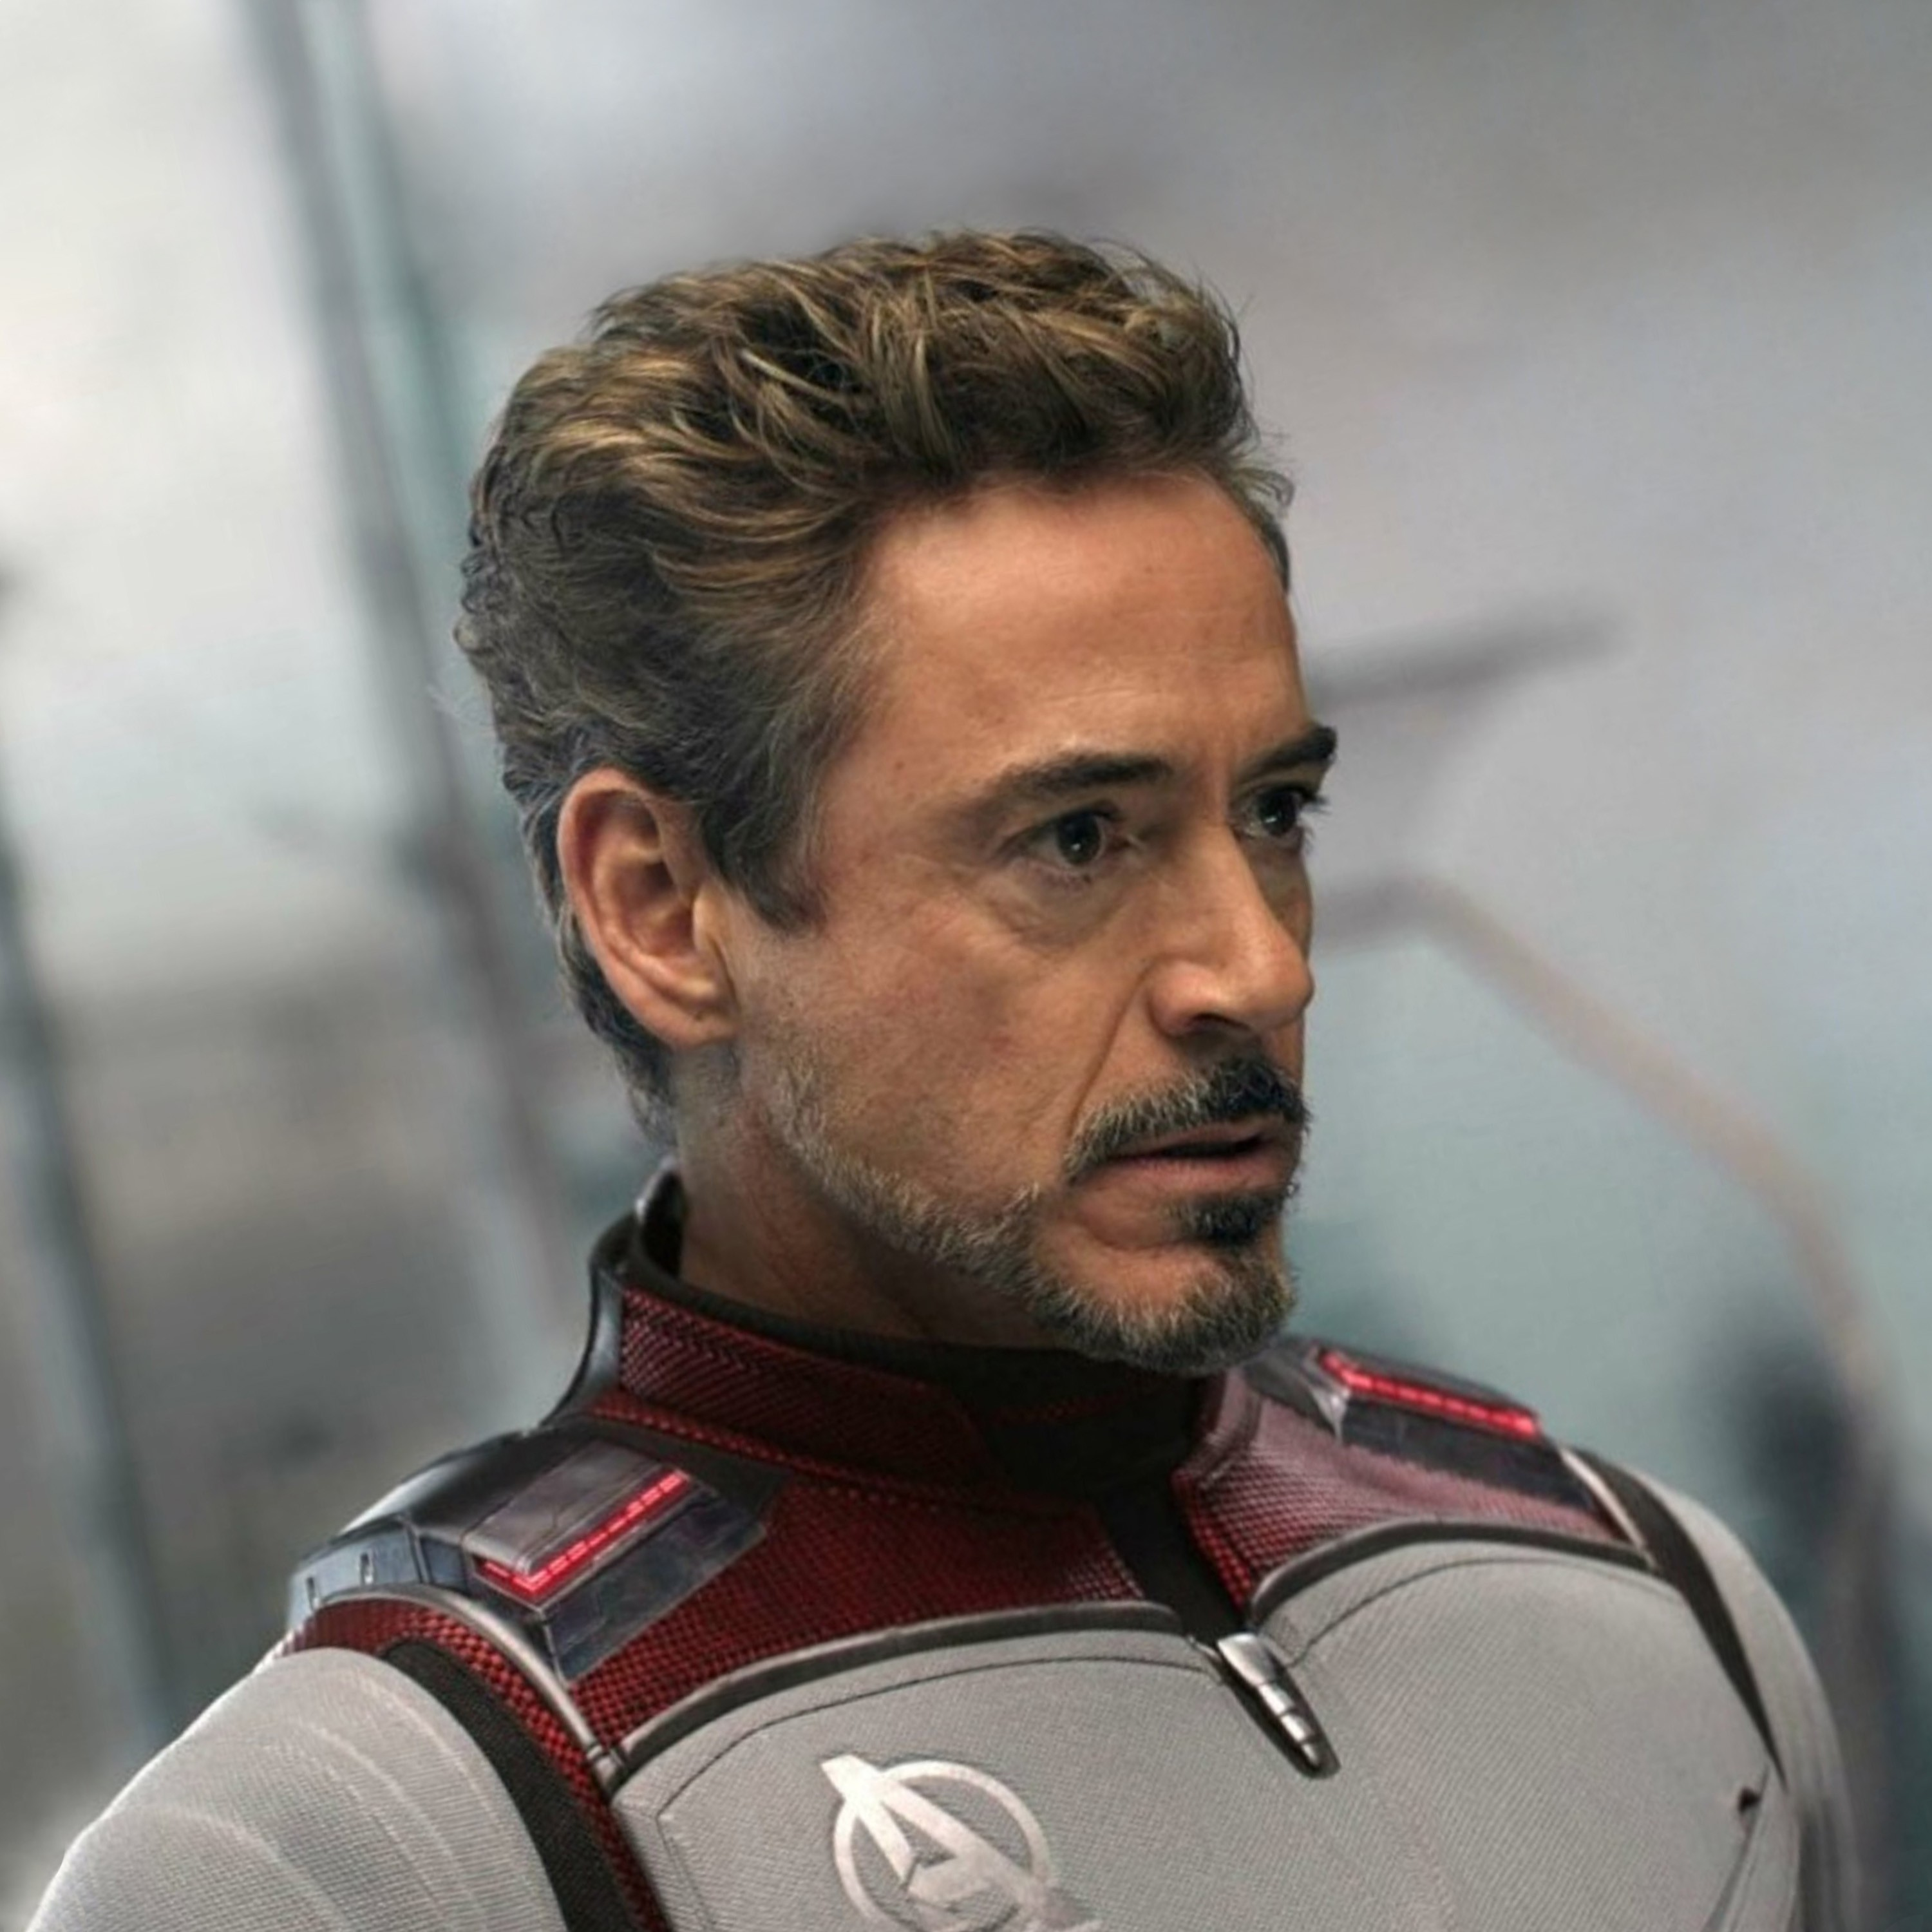 A full beard of Tony Stark.